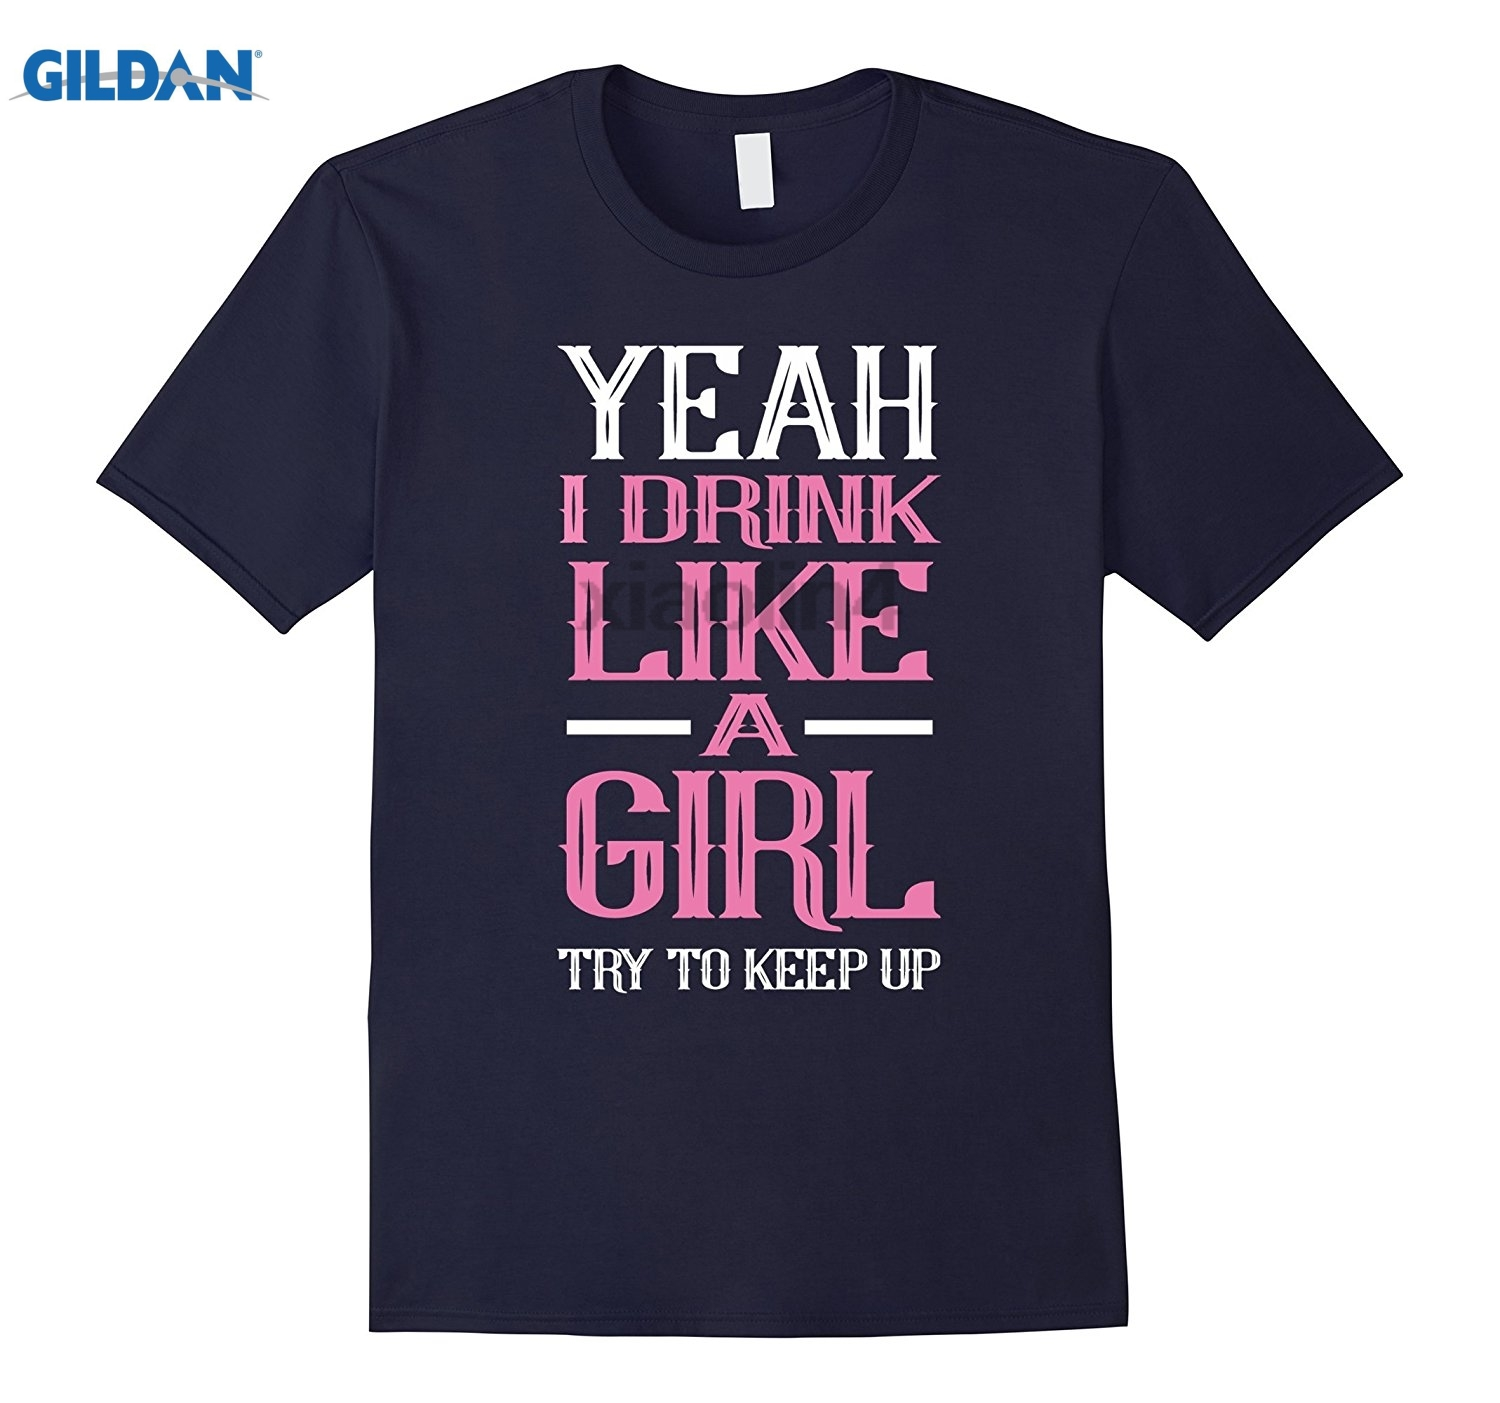 GILDAN Yeah I Drink Like Girl Try To Keep Up Tee Shirt Funny T-shirt summer dress T-shirt